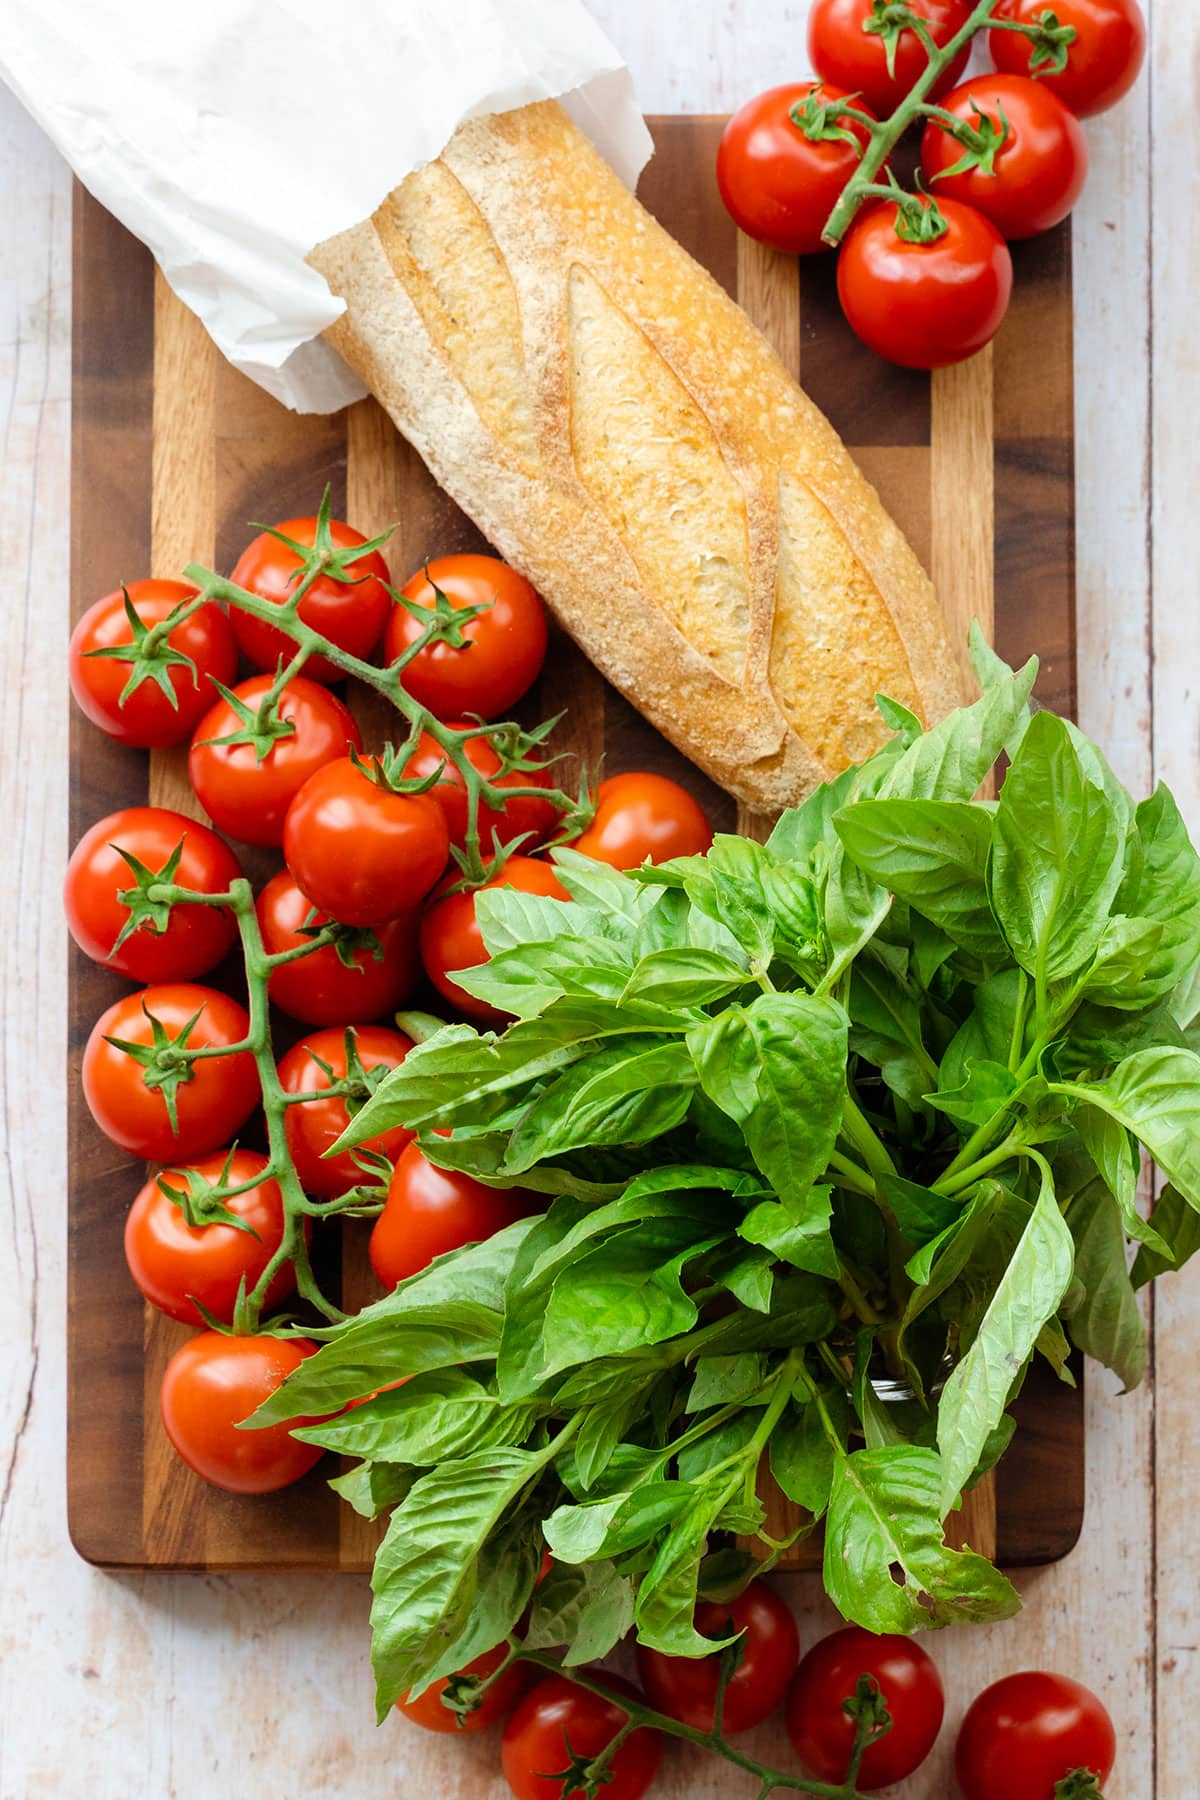 A fresh whole baguette, tomatoes on the wine, and fresh basil on a wooden cutting board.